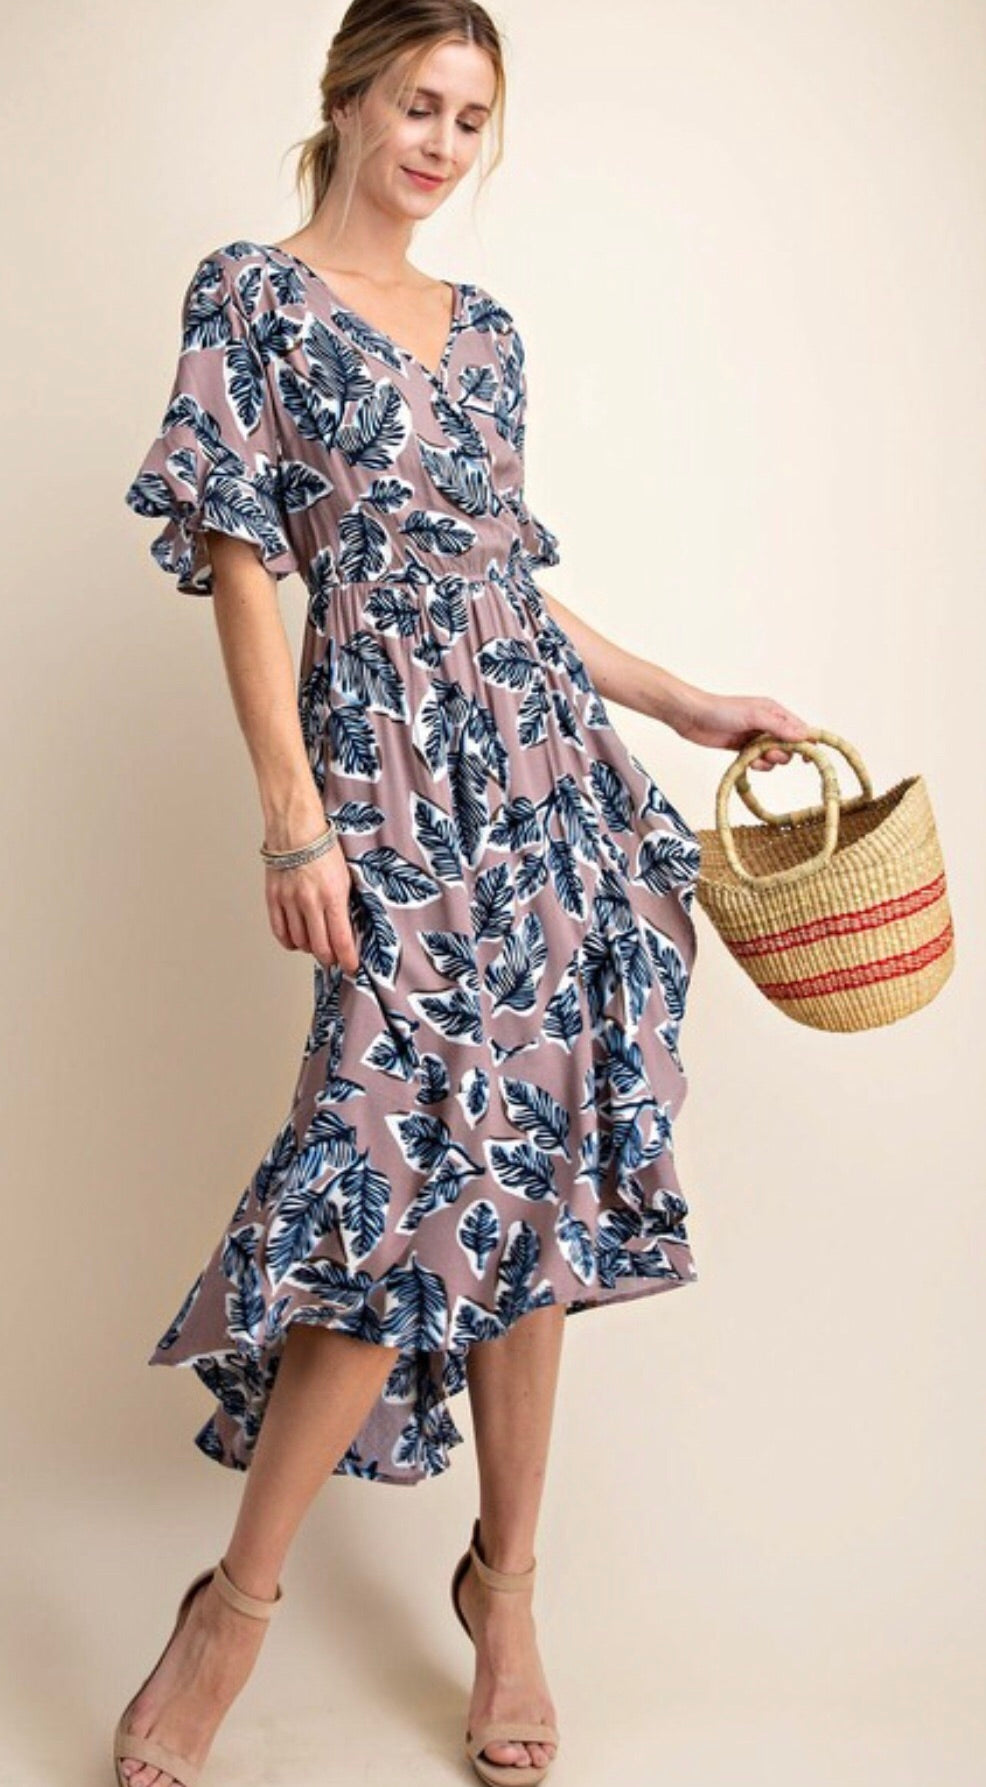 Ash Purple Patterned Midi Dress